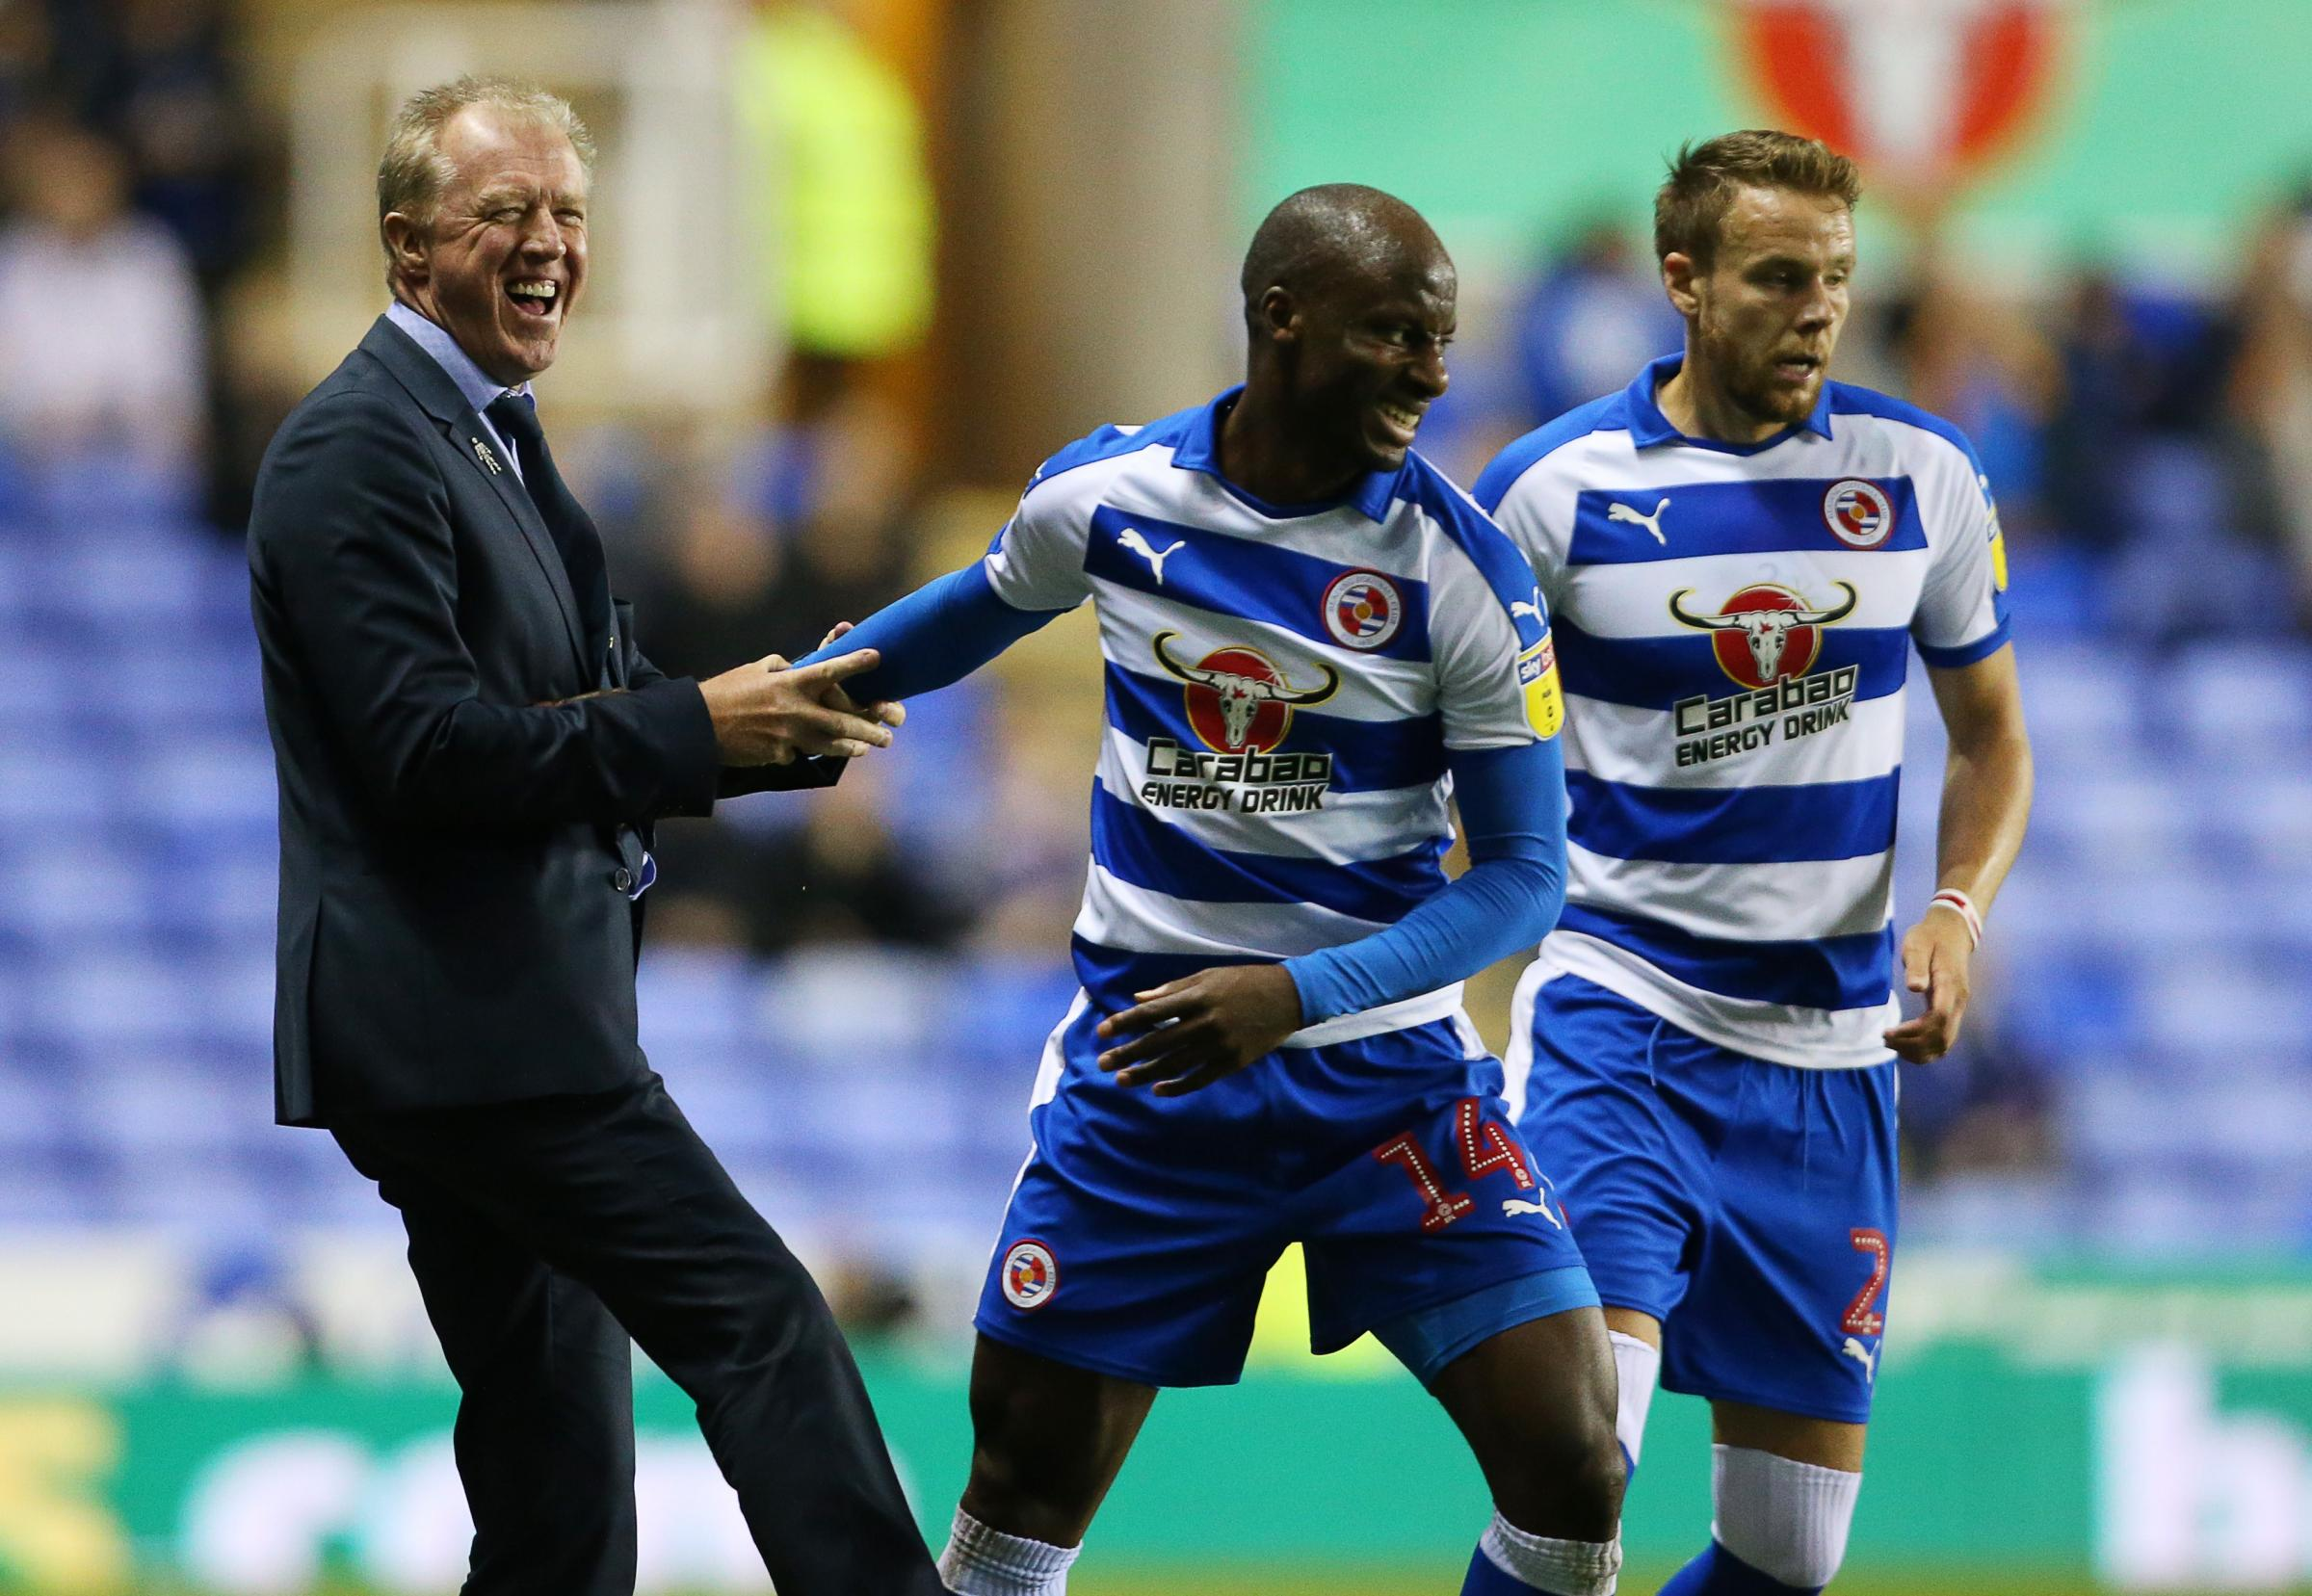 QPR form hard to escape from says Bidwell